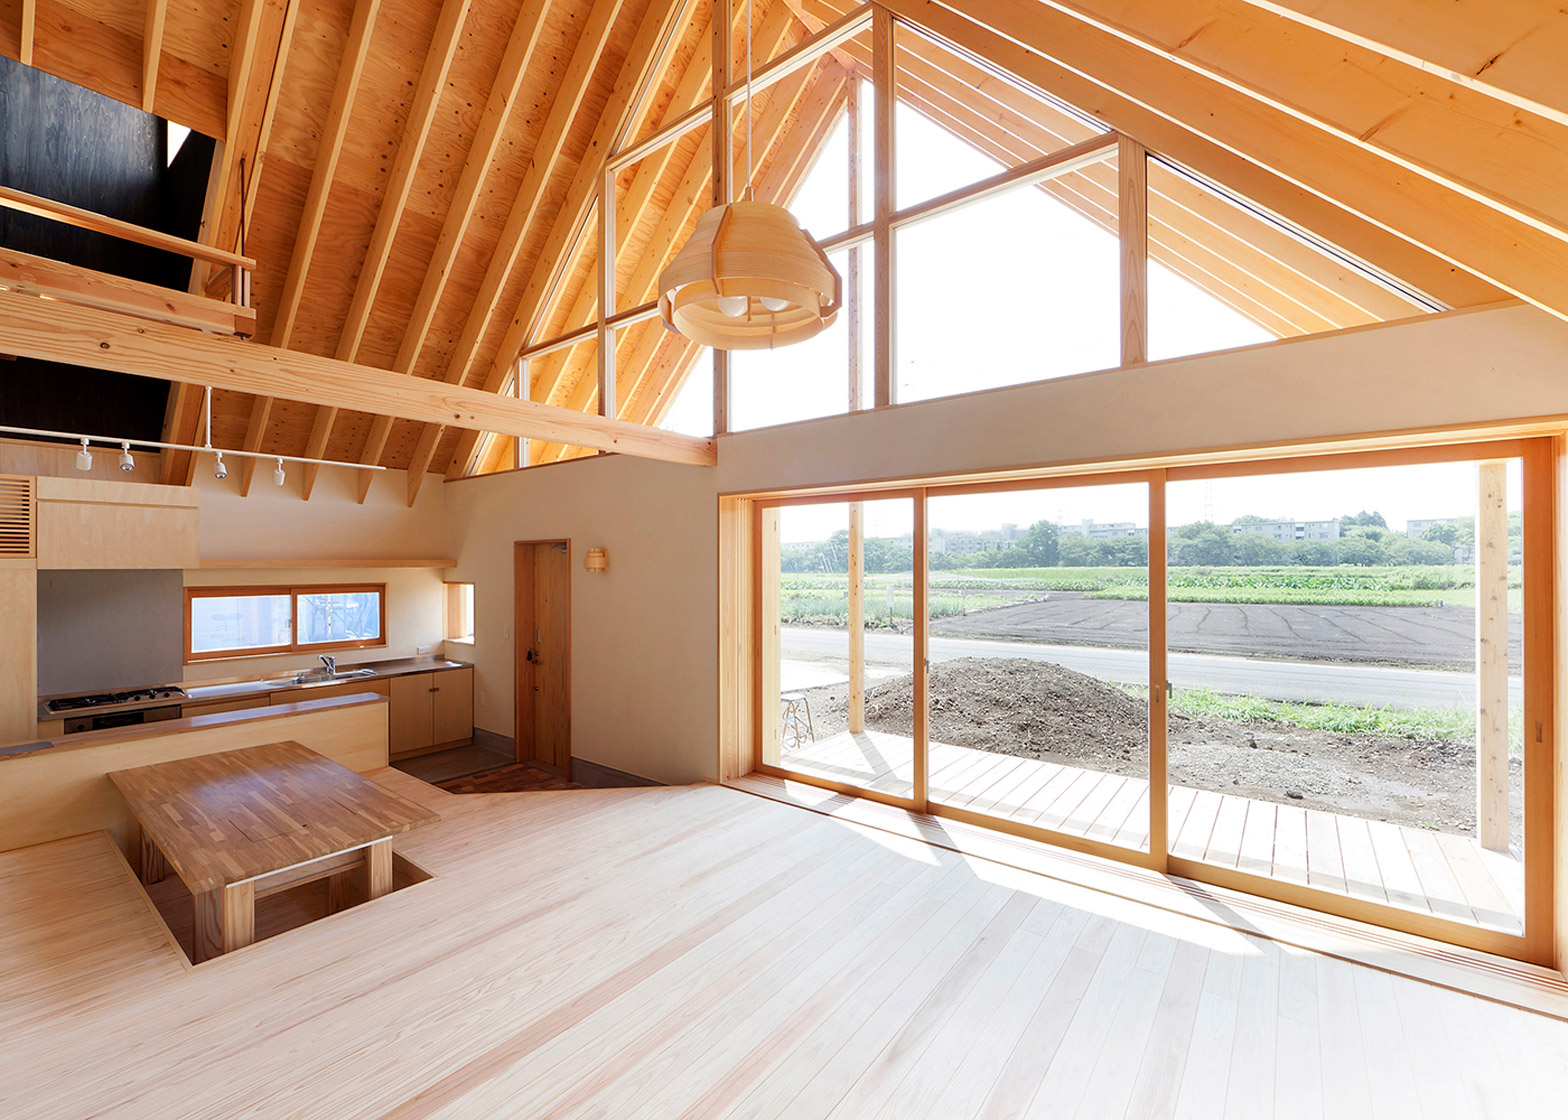 Gabled roof Kawagoe by Tailored Design Lab